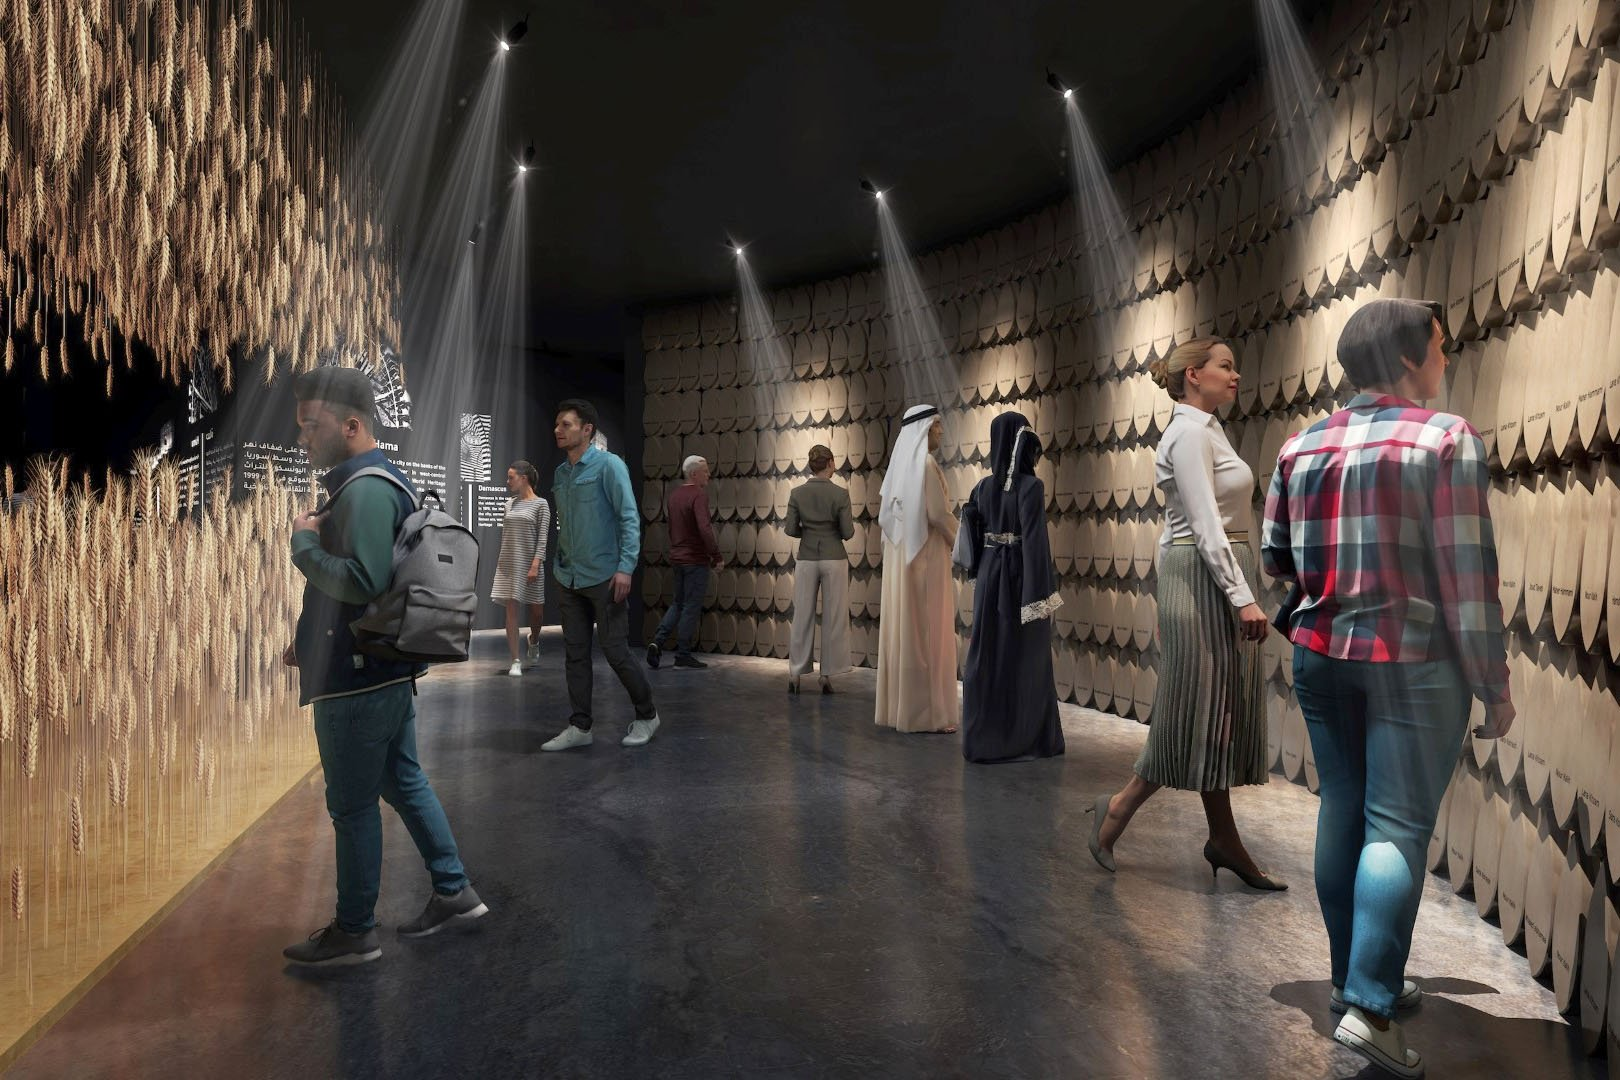 World's First Alphabet To Be Showed at Expo 2020 Dubai Syrian Pavilion